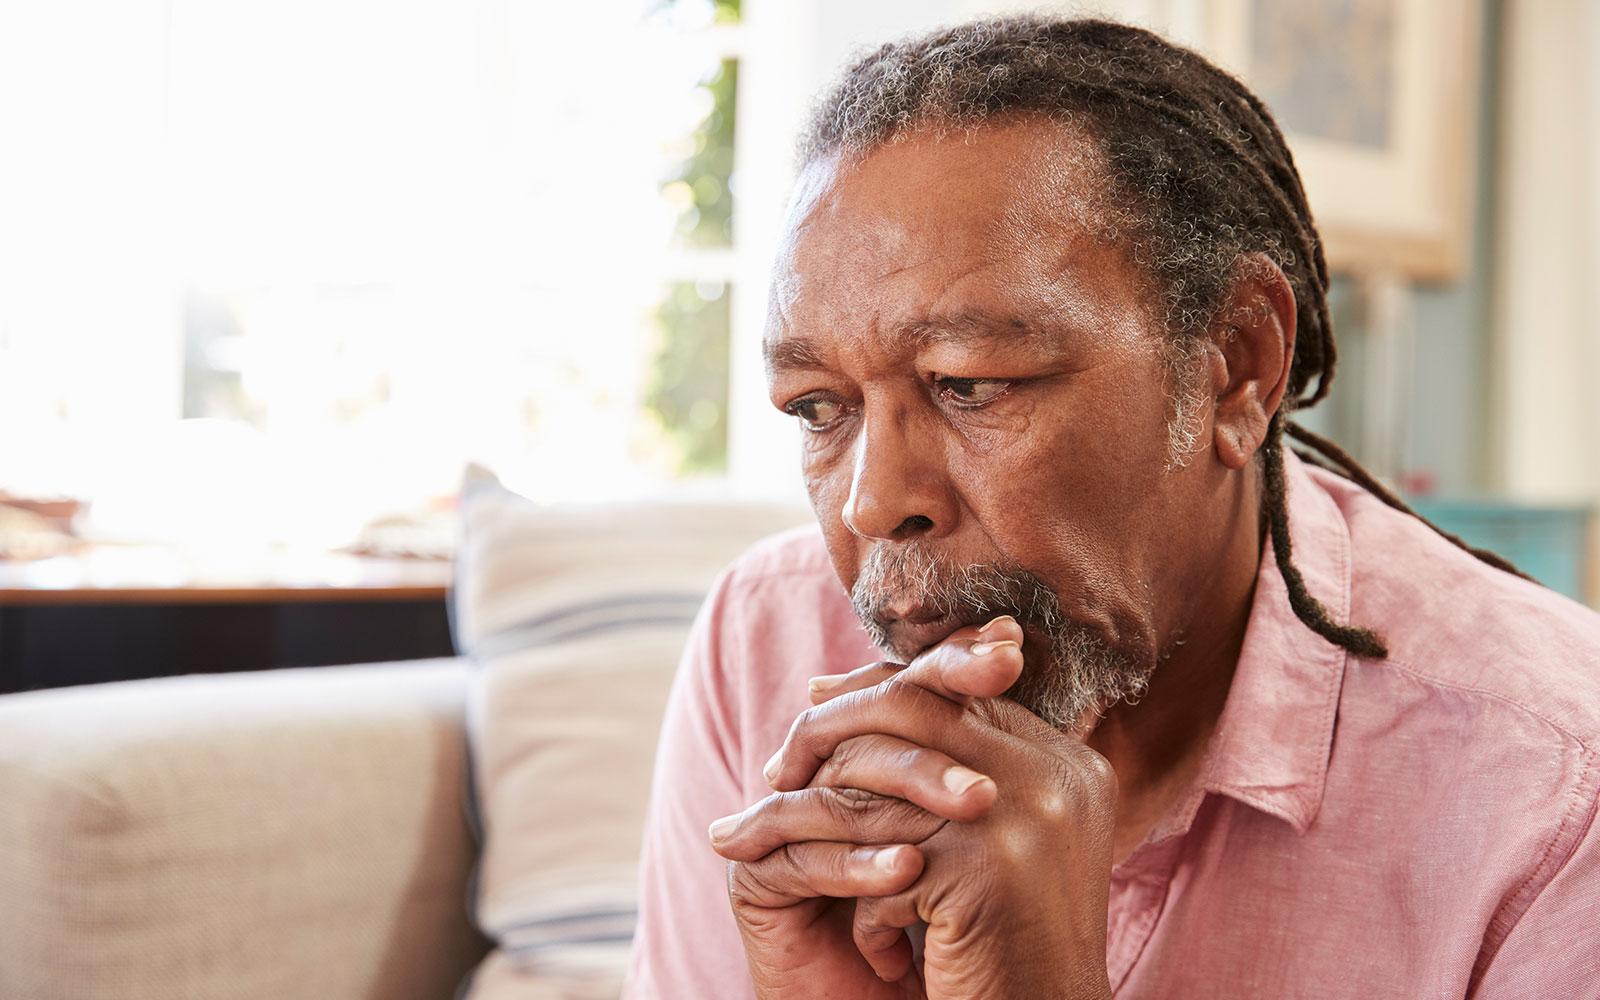 A senior African-American male seated on a couch, resting his head on his fists, in deep thought.